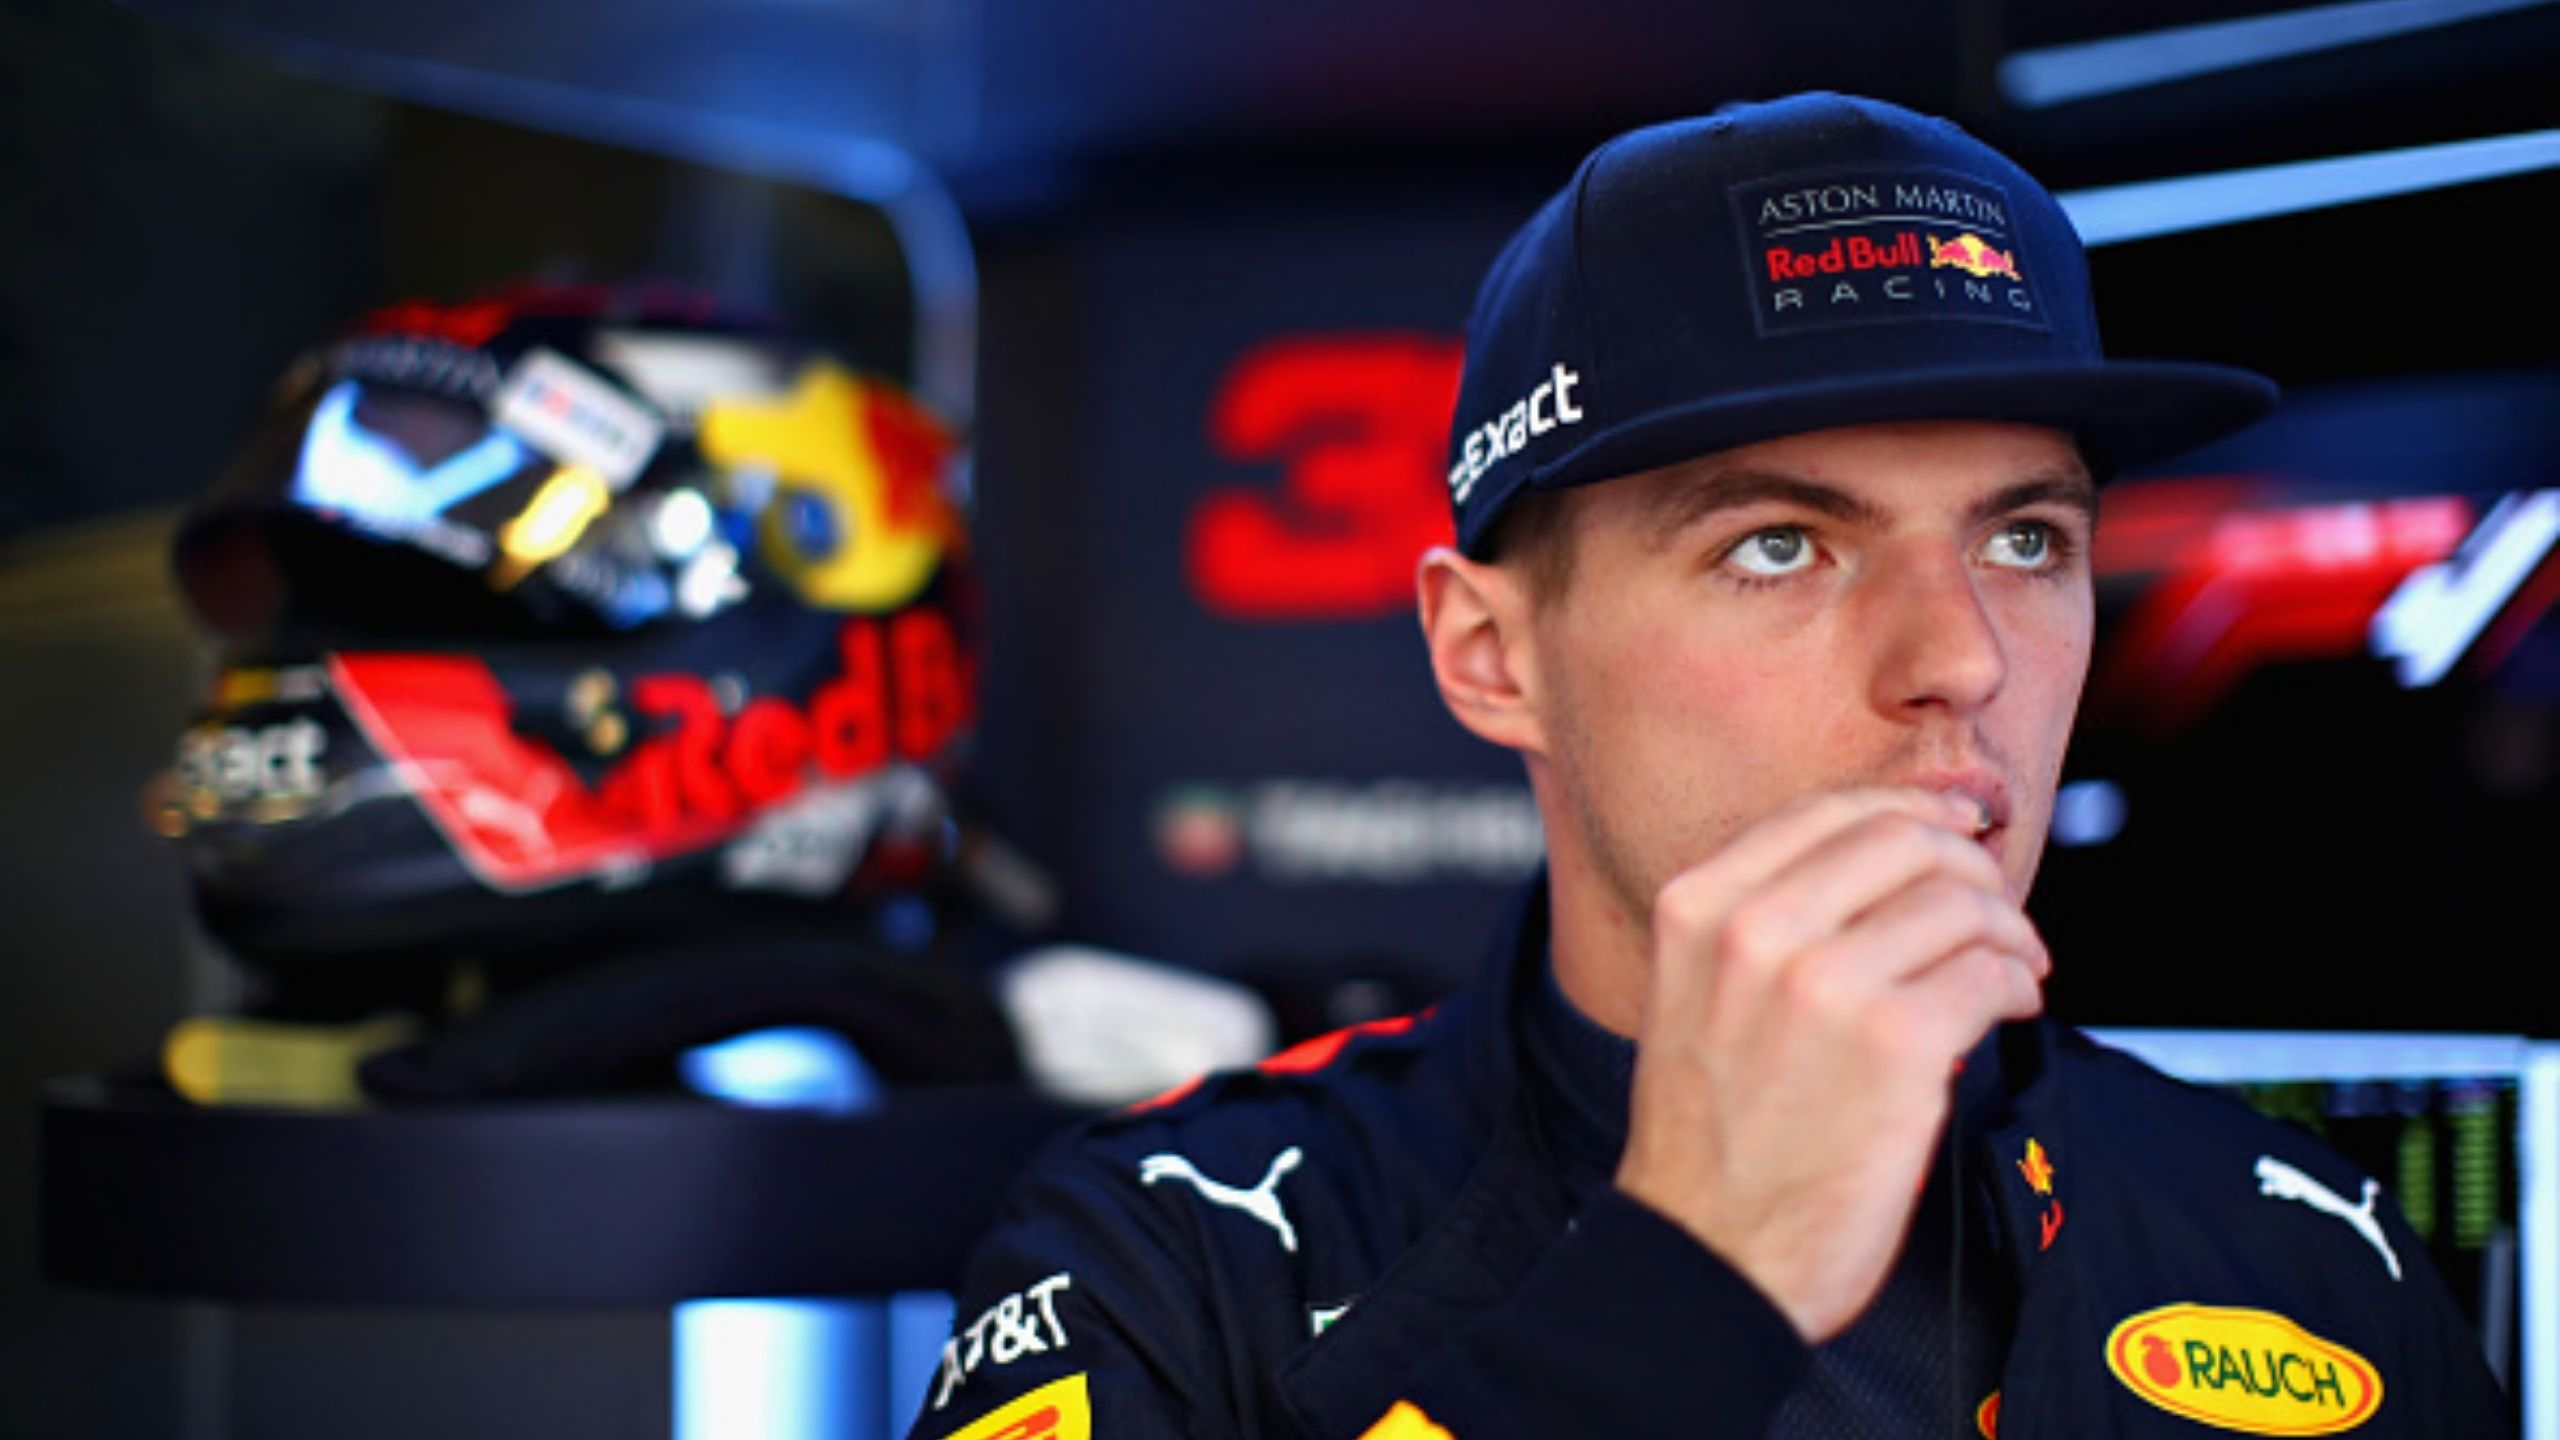 Max Verstappen: Mongolian government registers official complaint with UN against Red Bull driver's 'mongol' comments at Portuguese GP